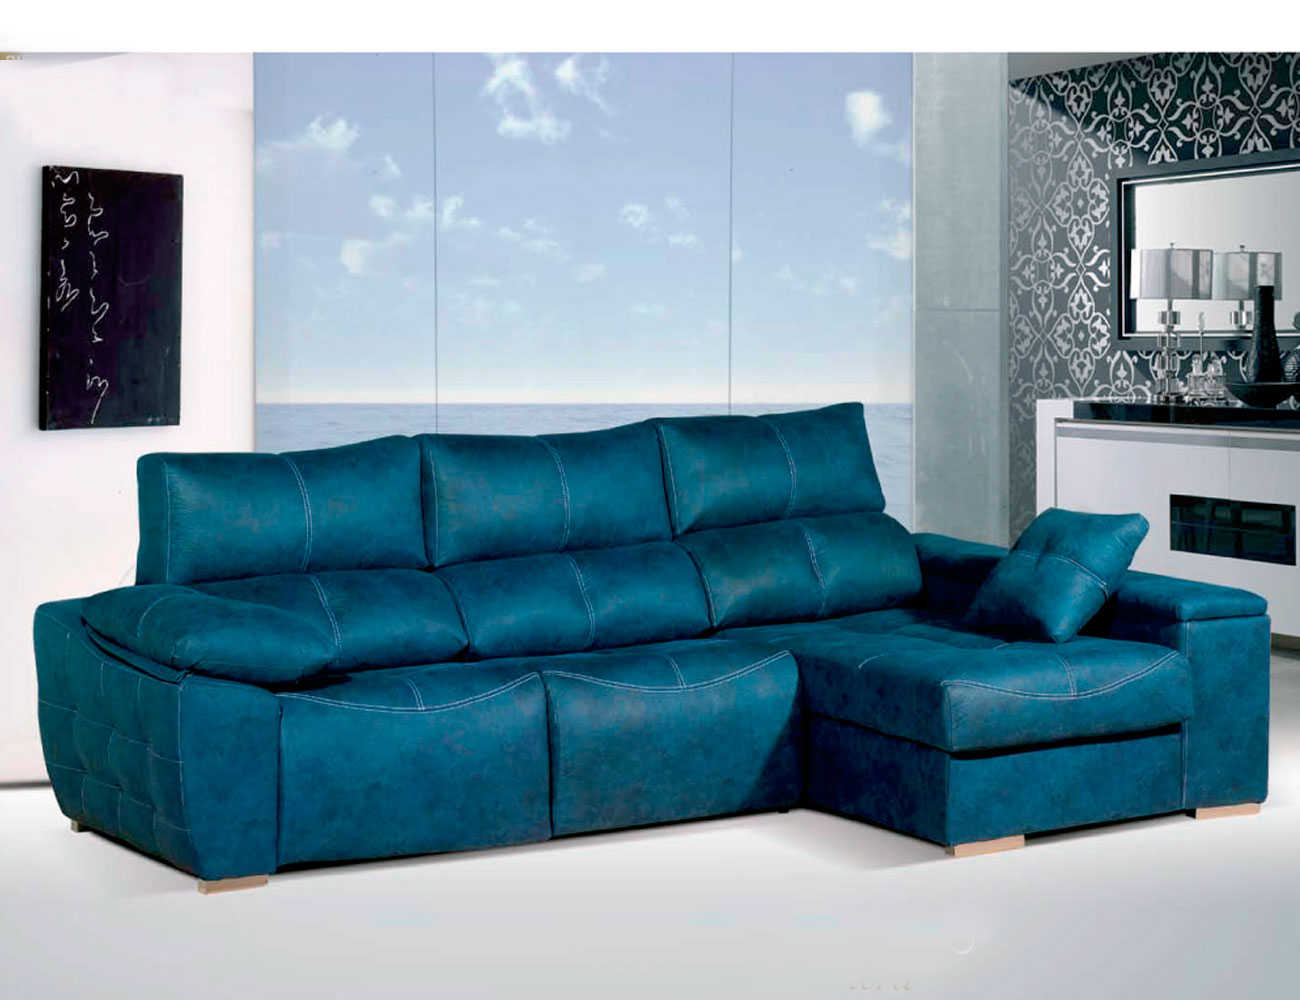 Sofa chaiselongue relax 2 motores anti manchas turquesa34